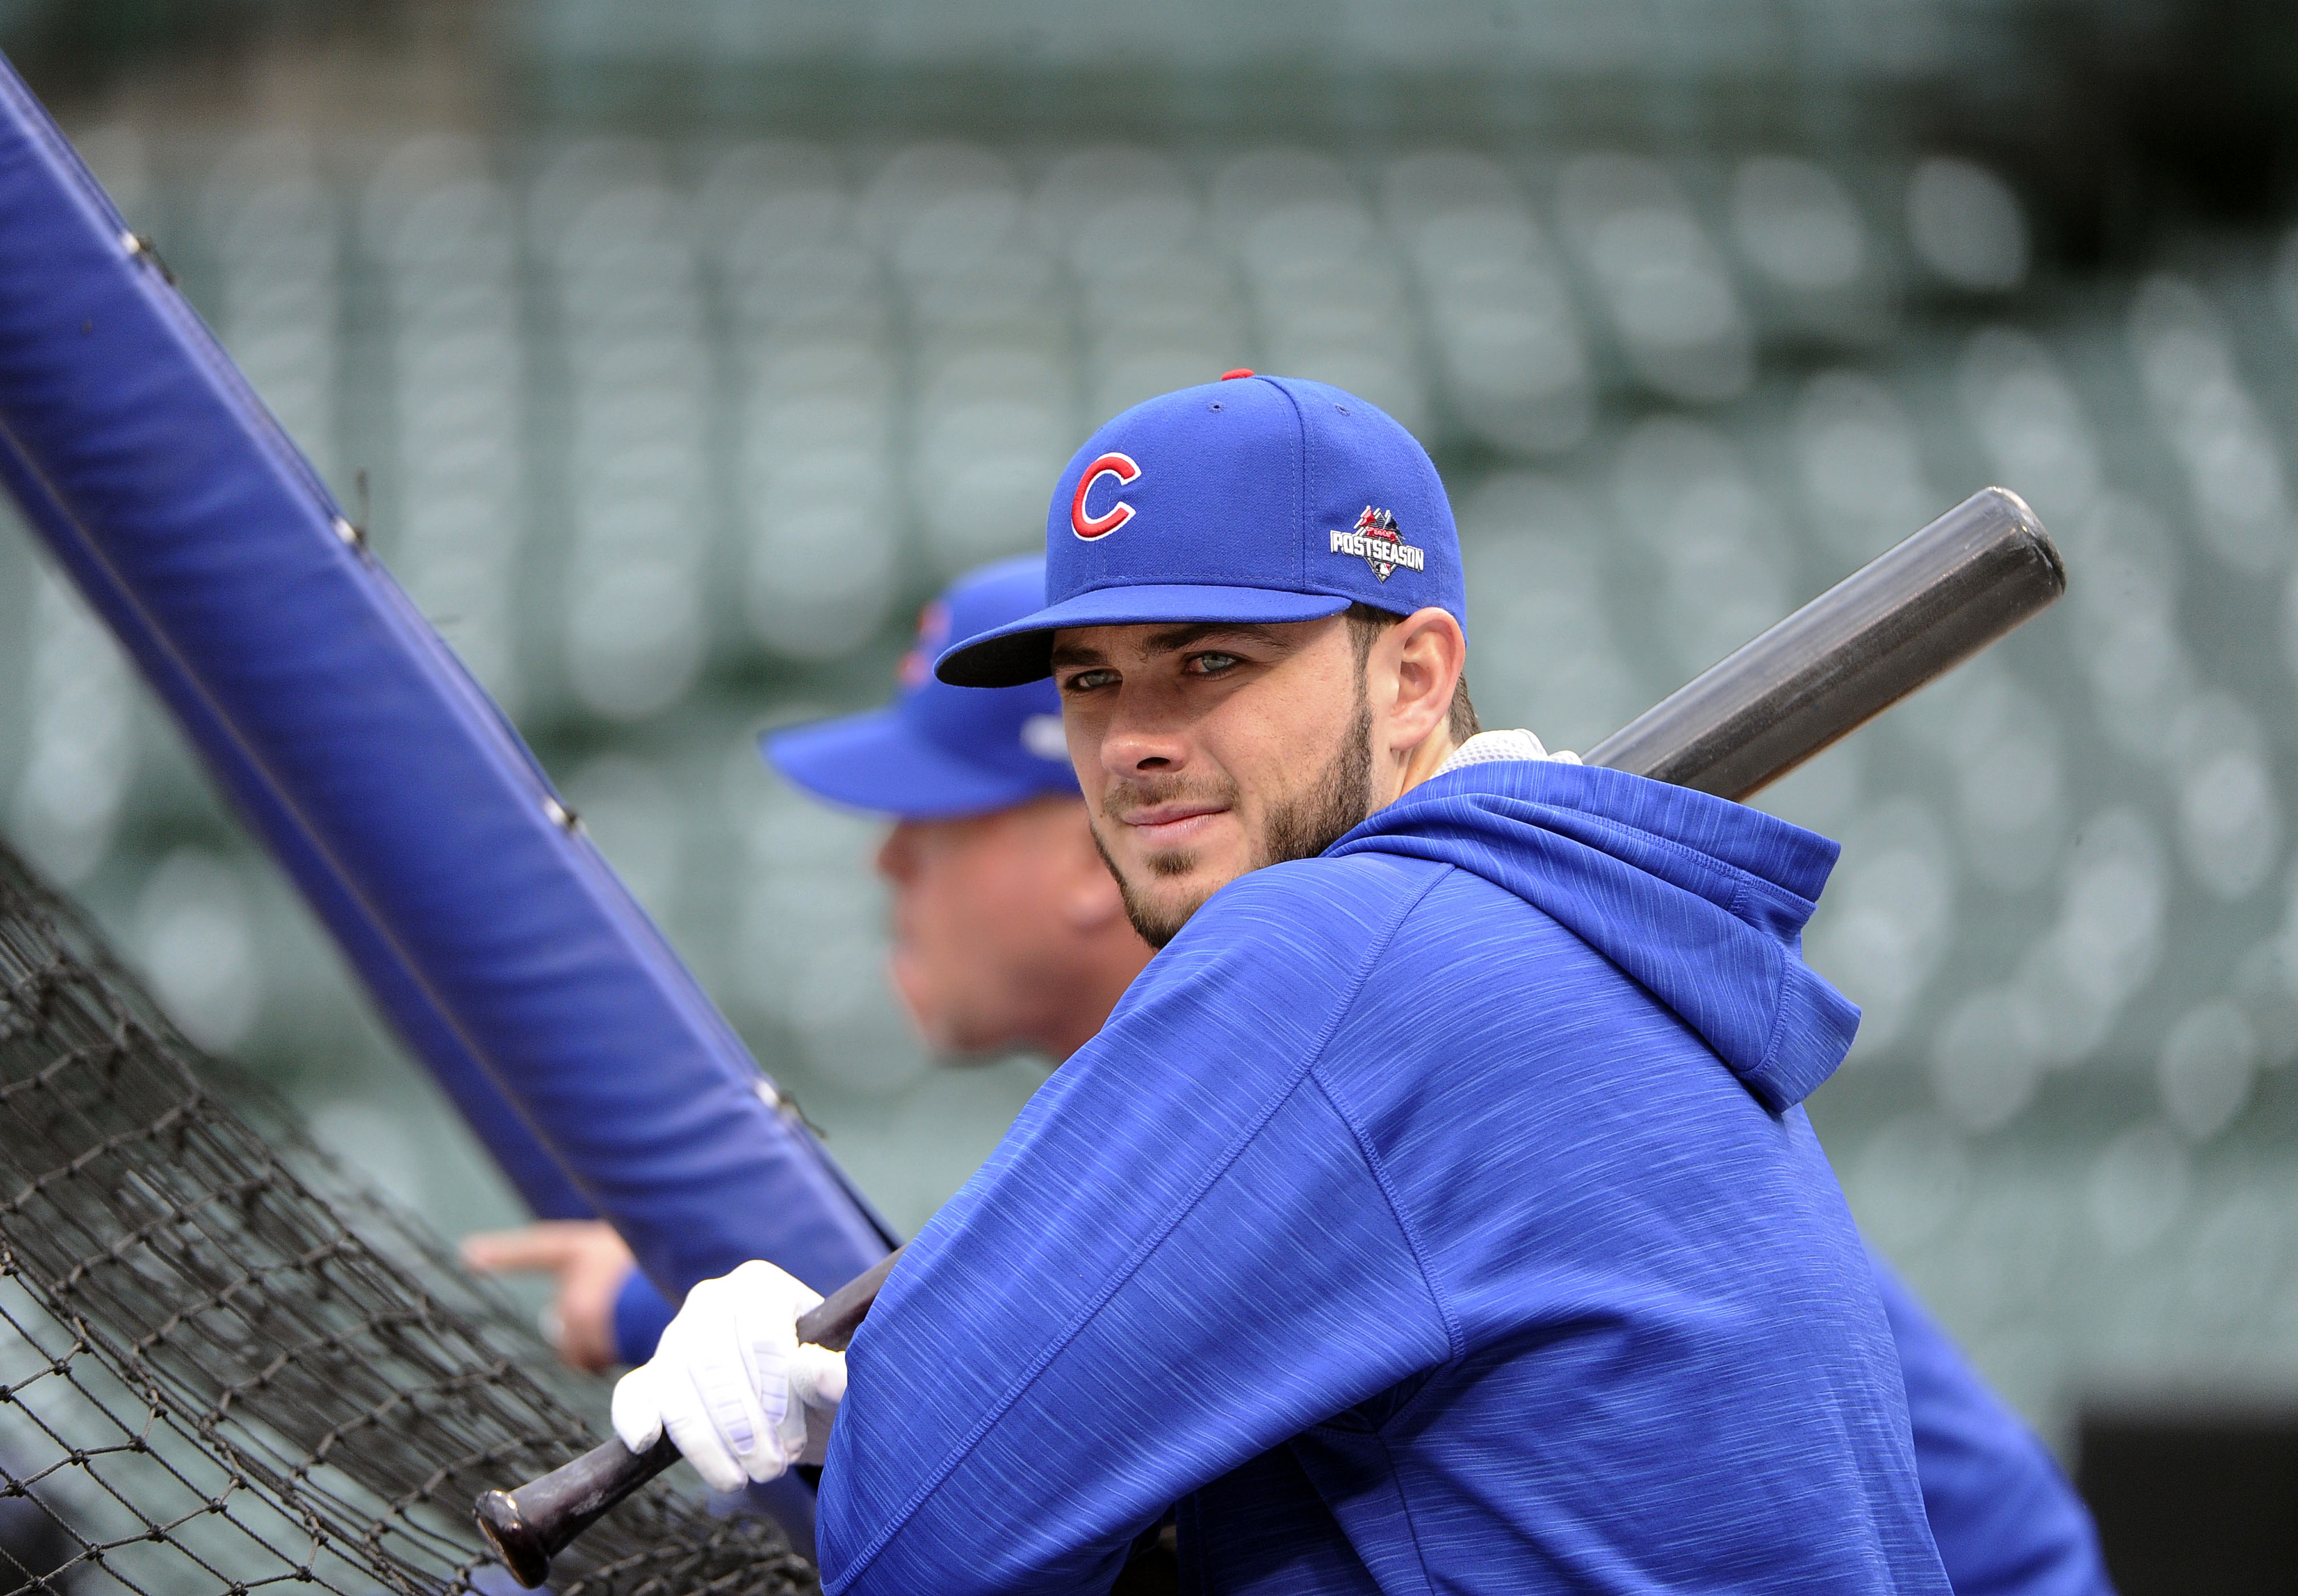 Chicago Cubs third baseman Kris Bryant waits to take batting practice during a workout in preparation for Game 1 of baseball's National League Championship Series in Chicago, Thursday, Oct. 15, 2015. (AP Photo/David Banks)